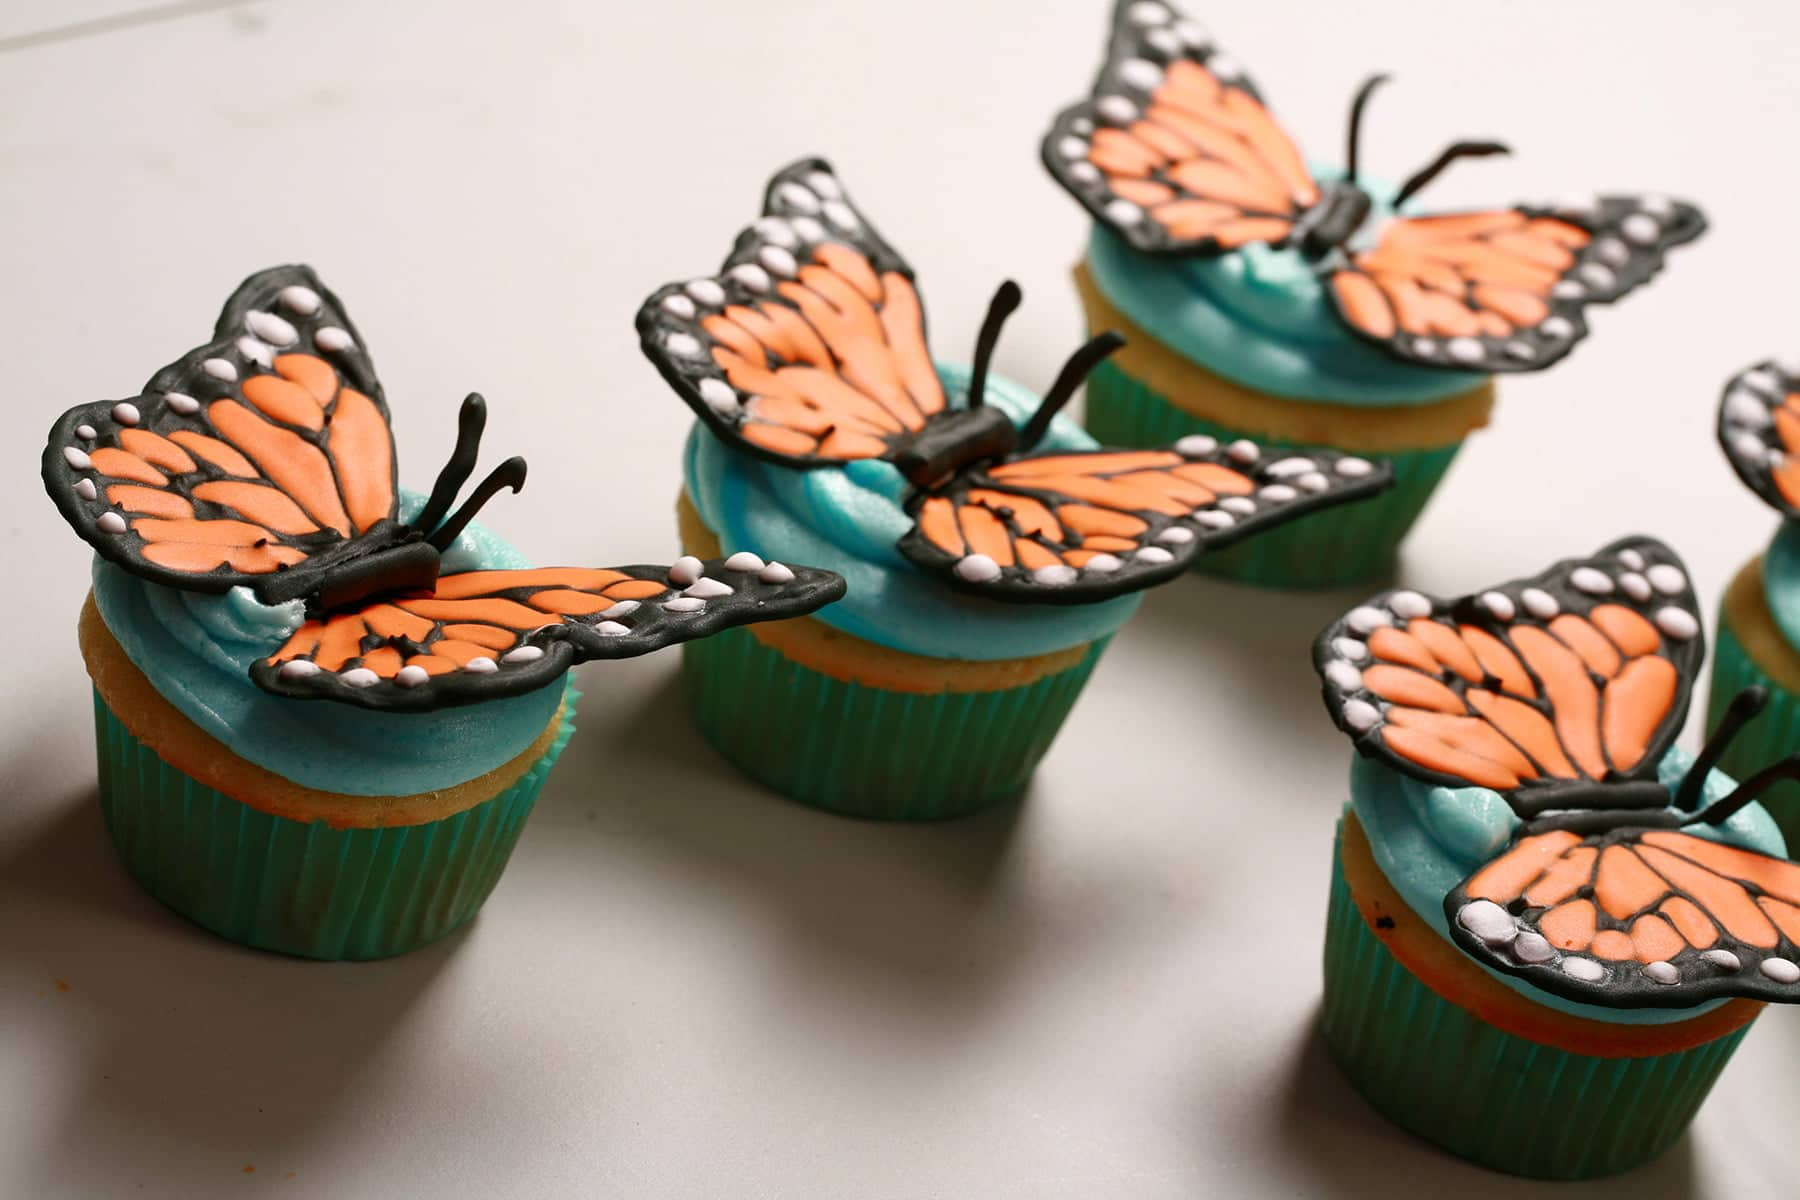 A set of 4 vanilla cupcakes with royal icing monarch butterfly wings on top of each.  They are position to look like they are flying away from the camera.